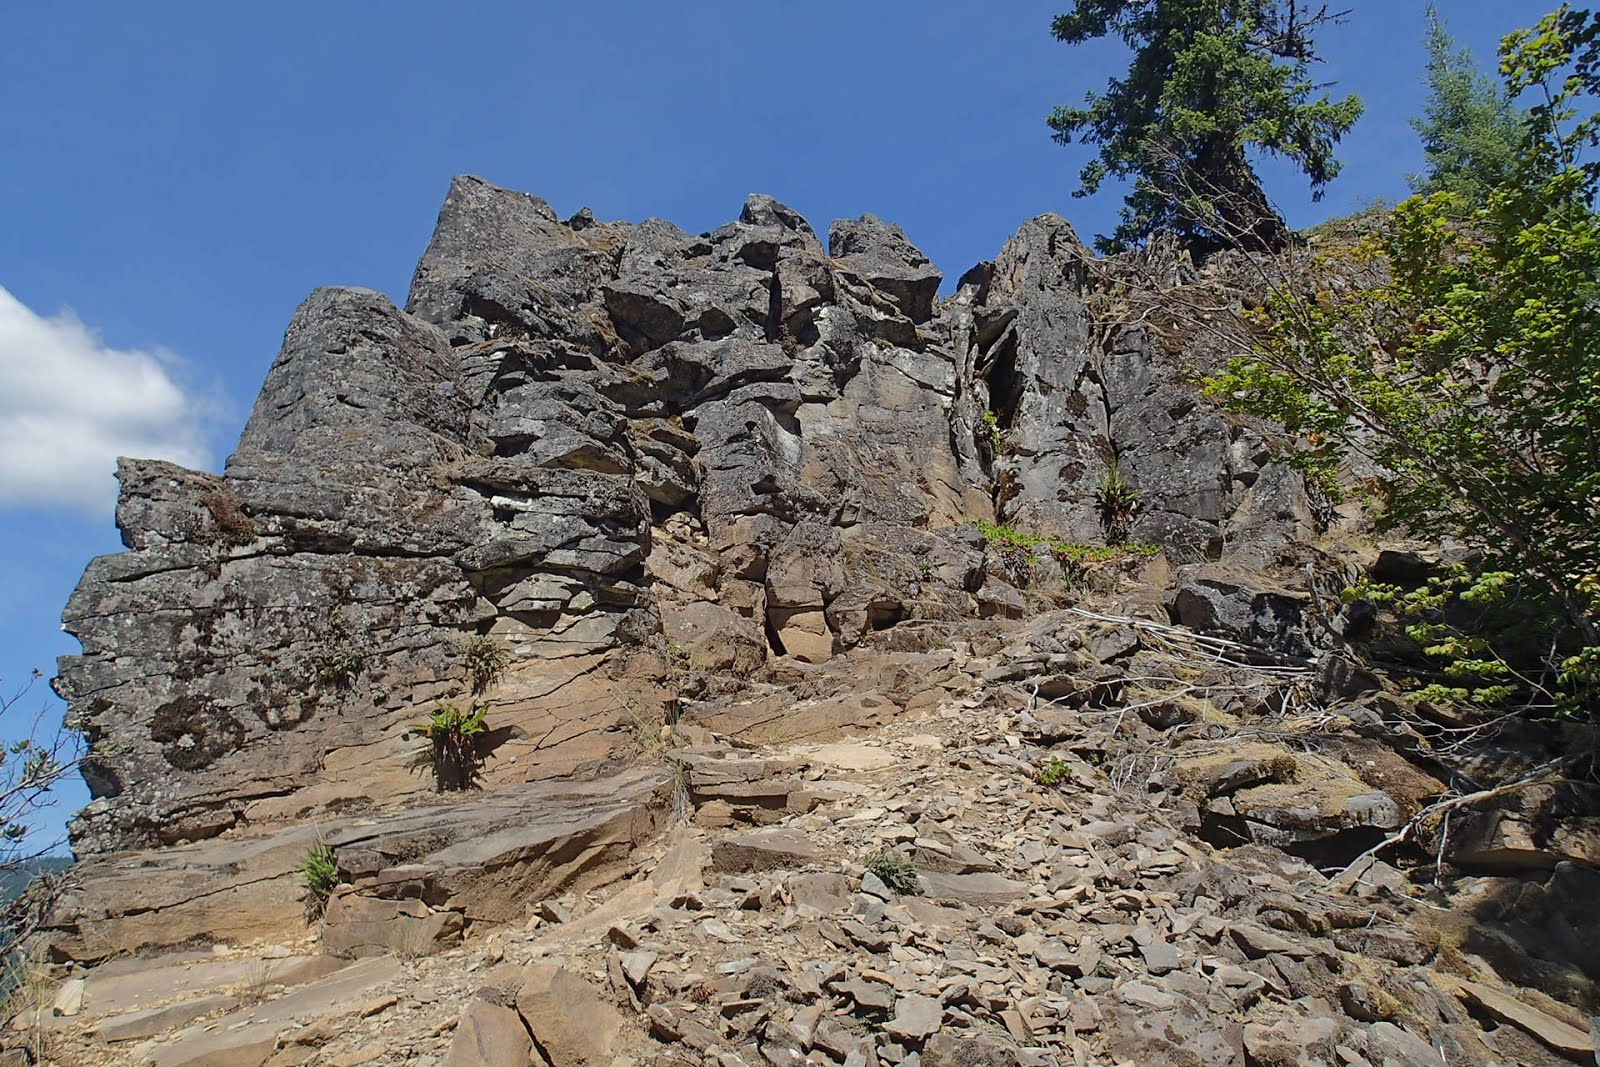 Casing Oregon: A Case-Style Family Outing: The Daly Lake Area